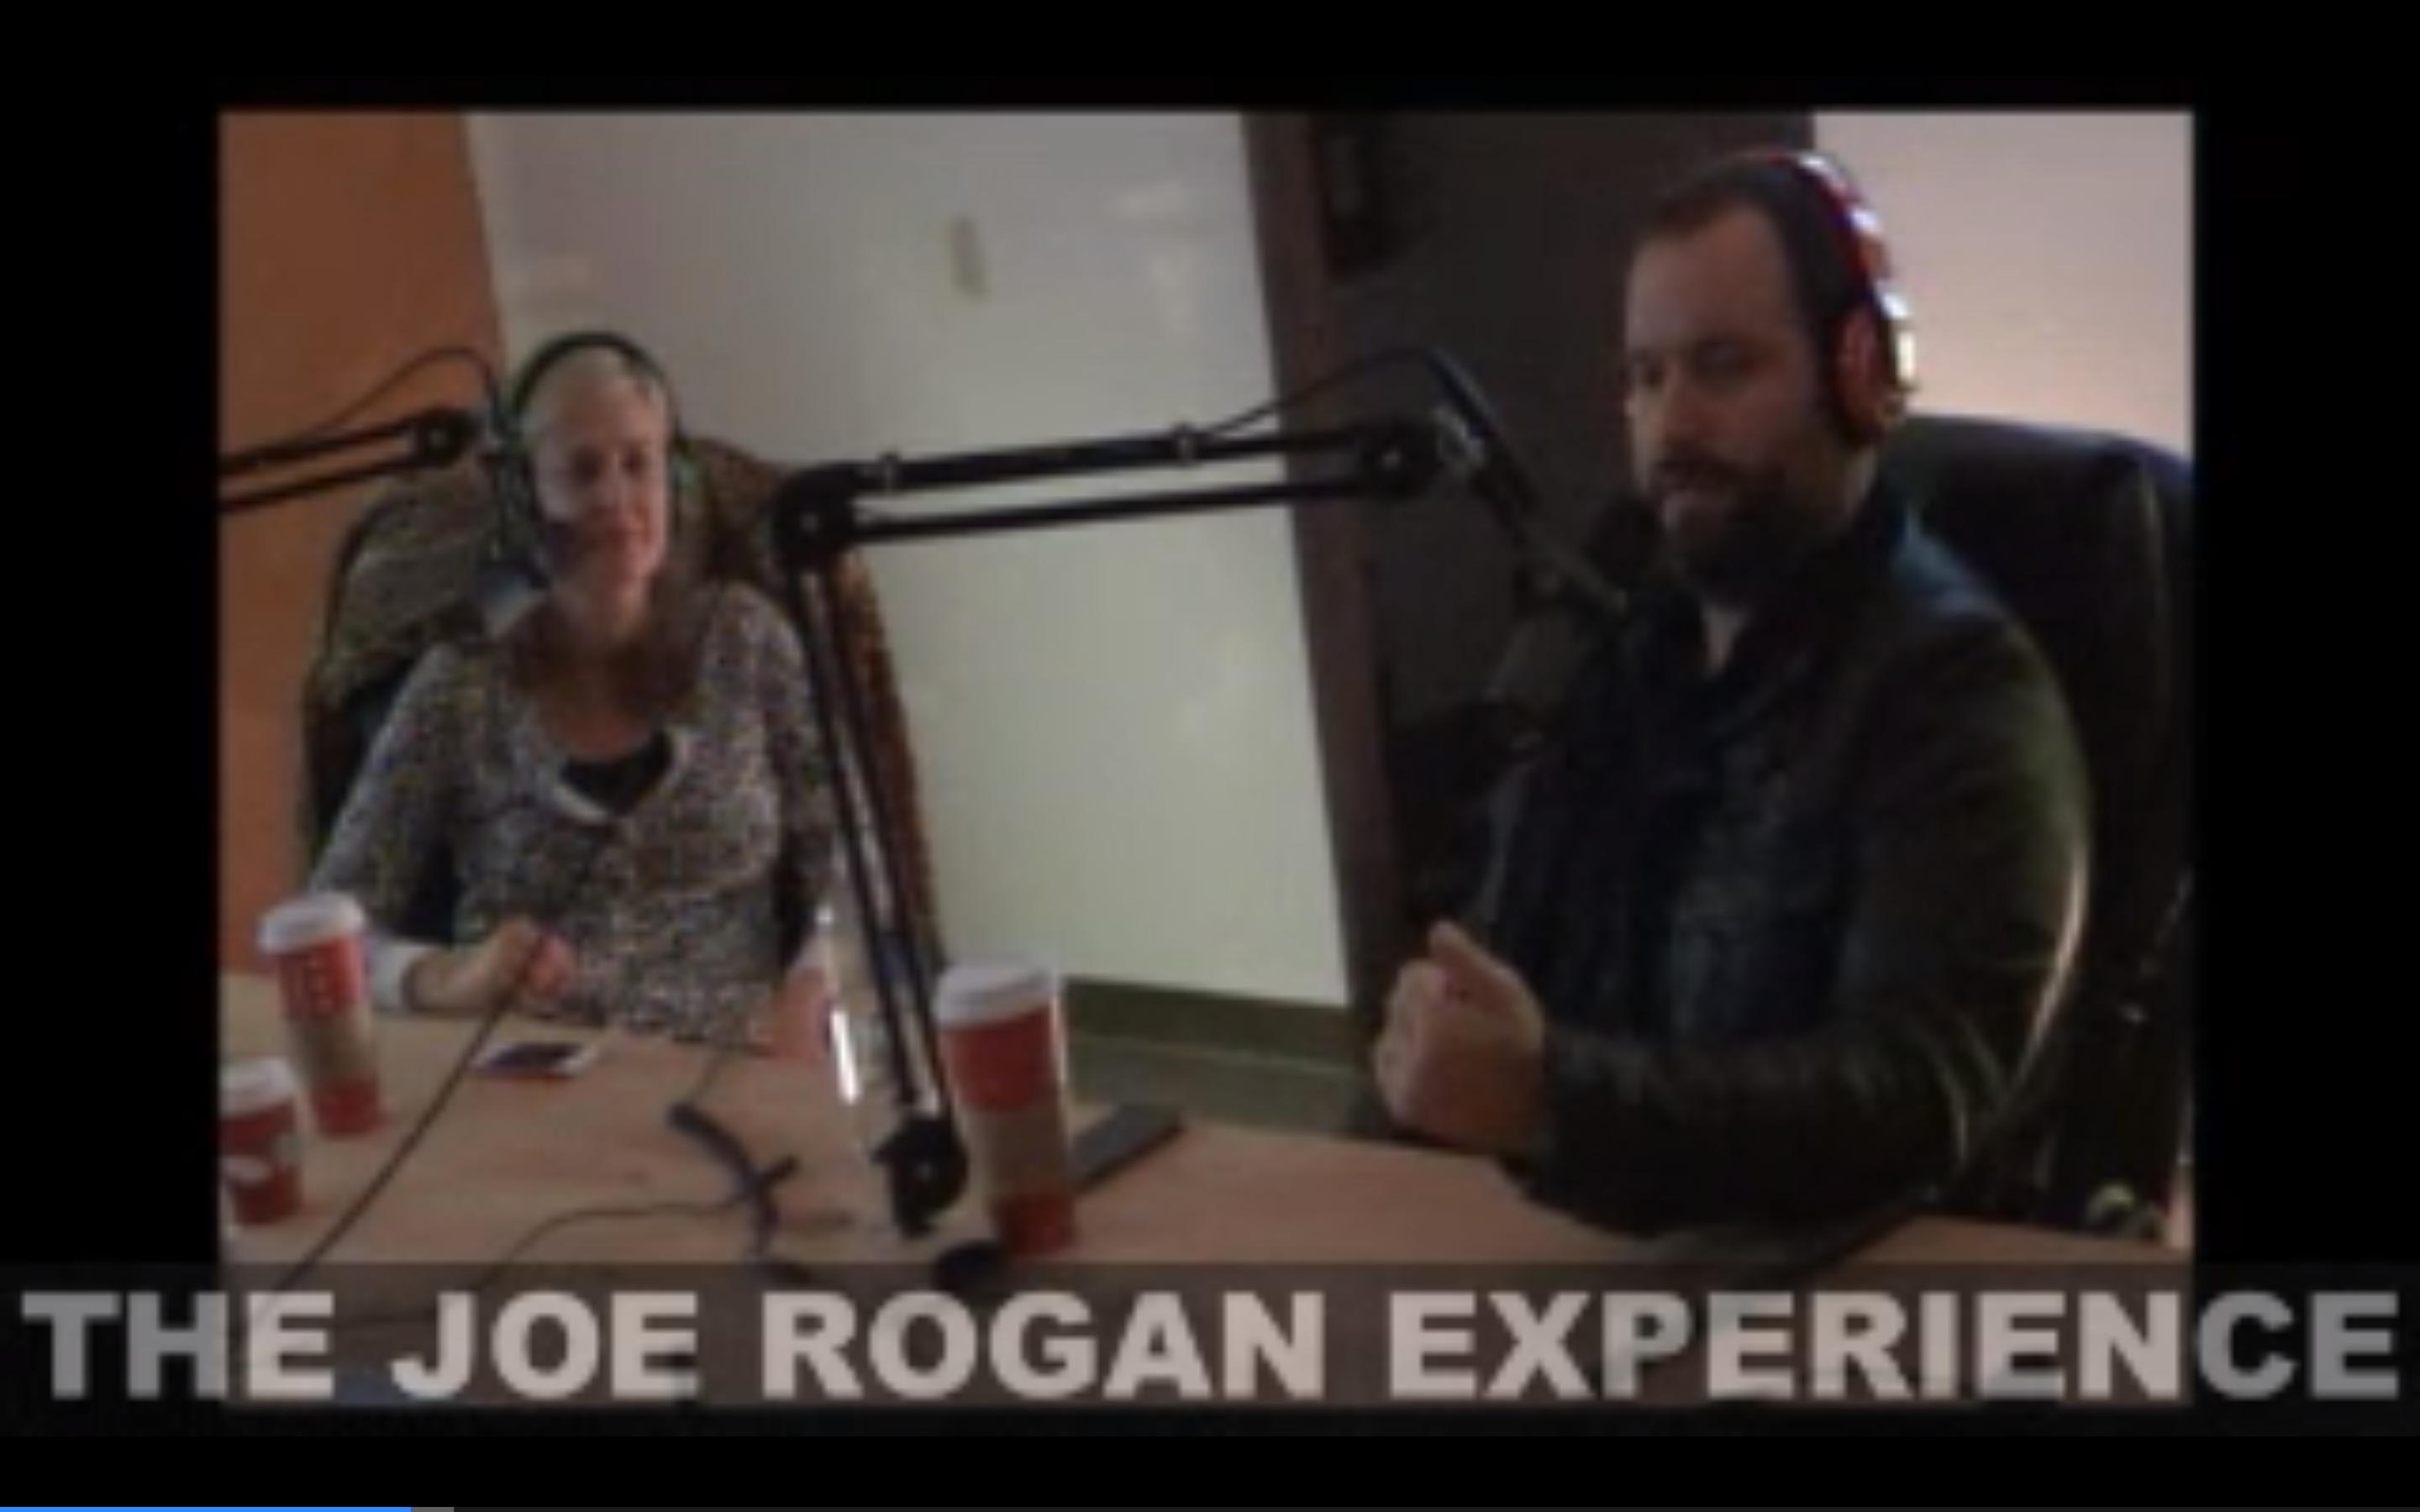 The Joe Rogan Experience #295 - Tom Segura, Christina Pazsitzky, Brian Redban